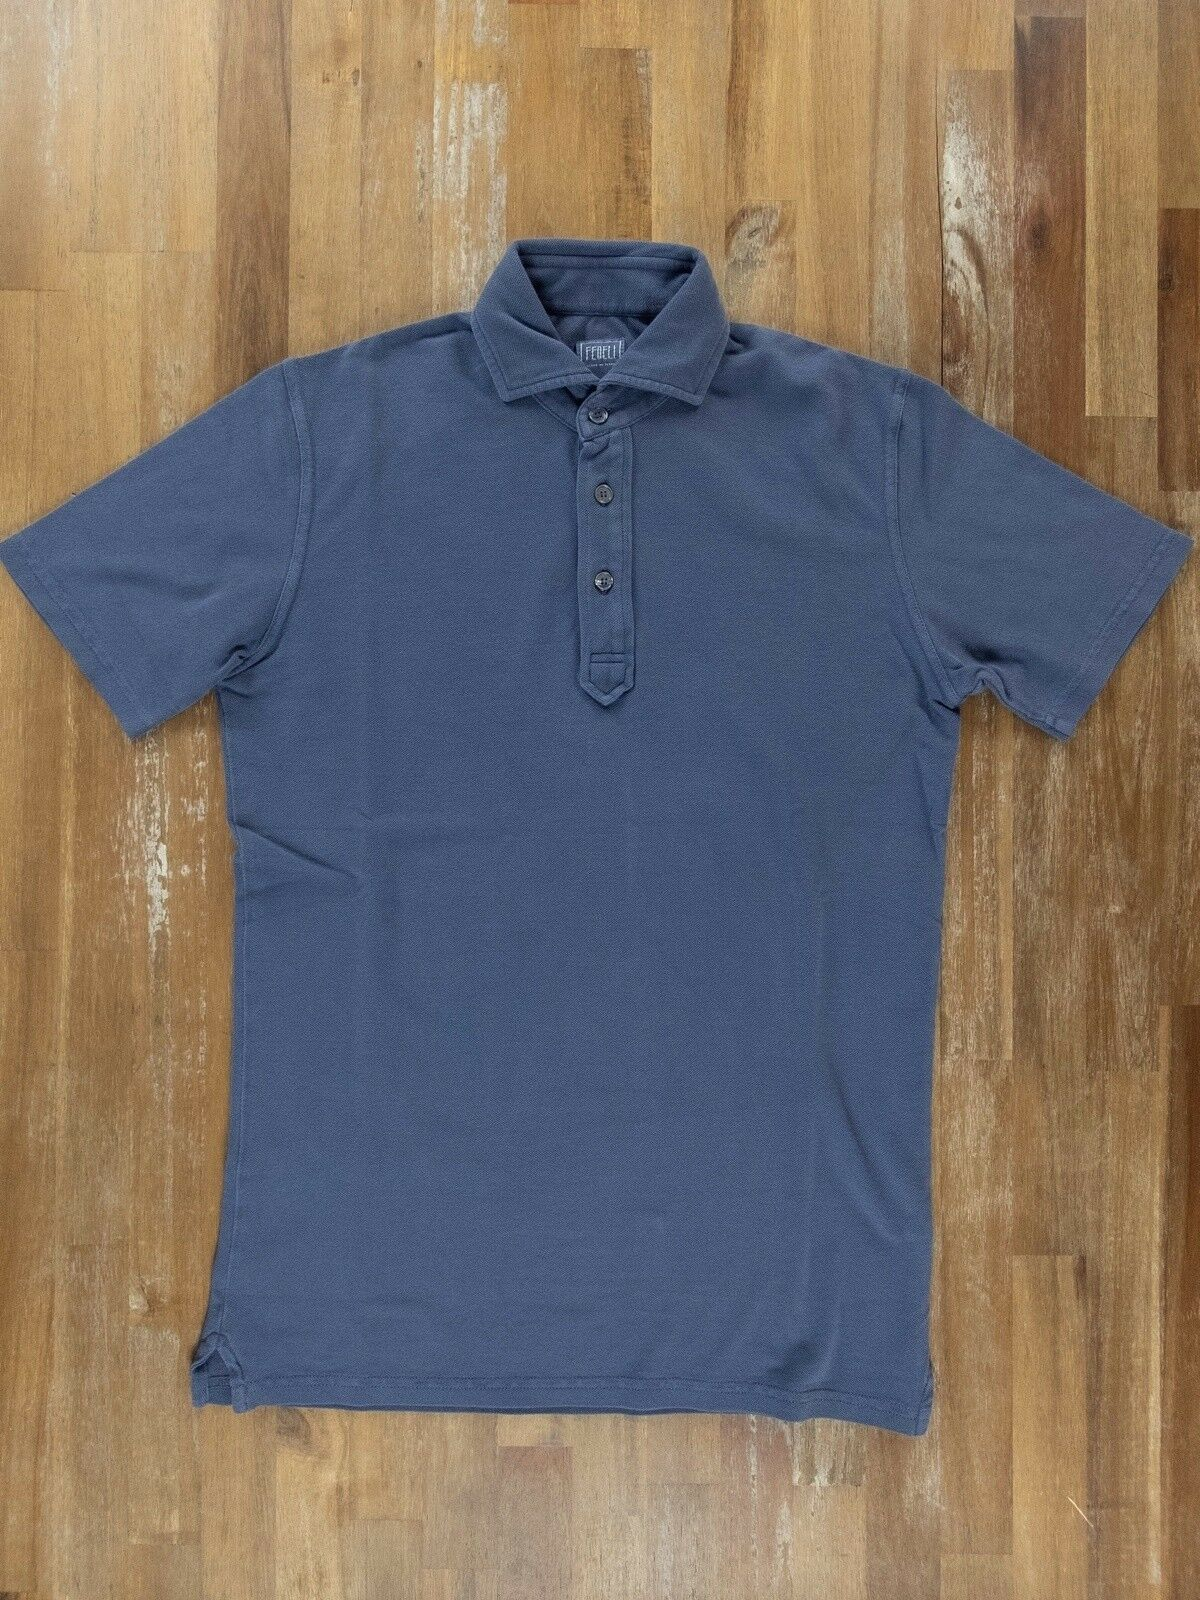 FEDELI slim-fit bluee polo shirt authentic - Size Medium   48 NWOT